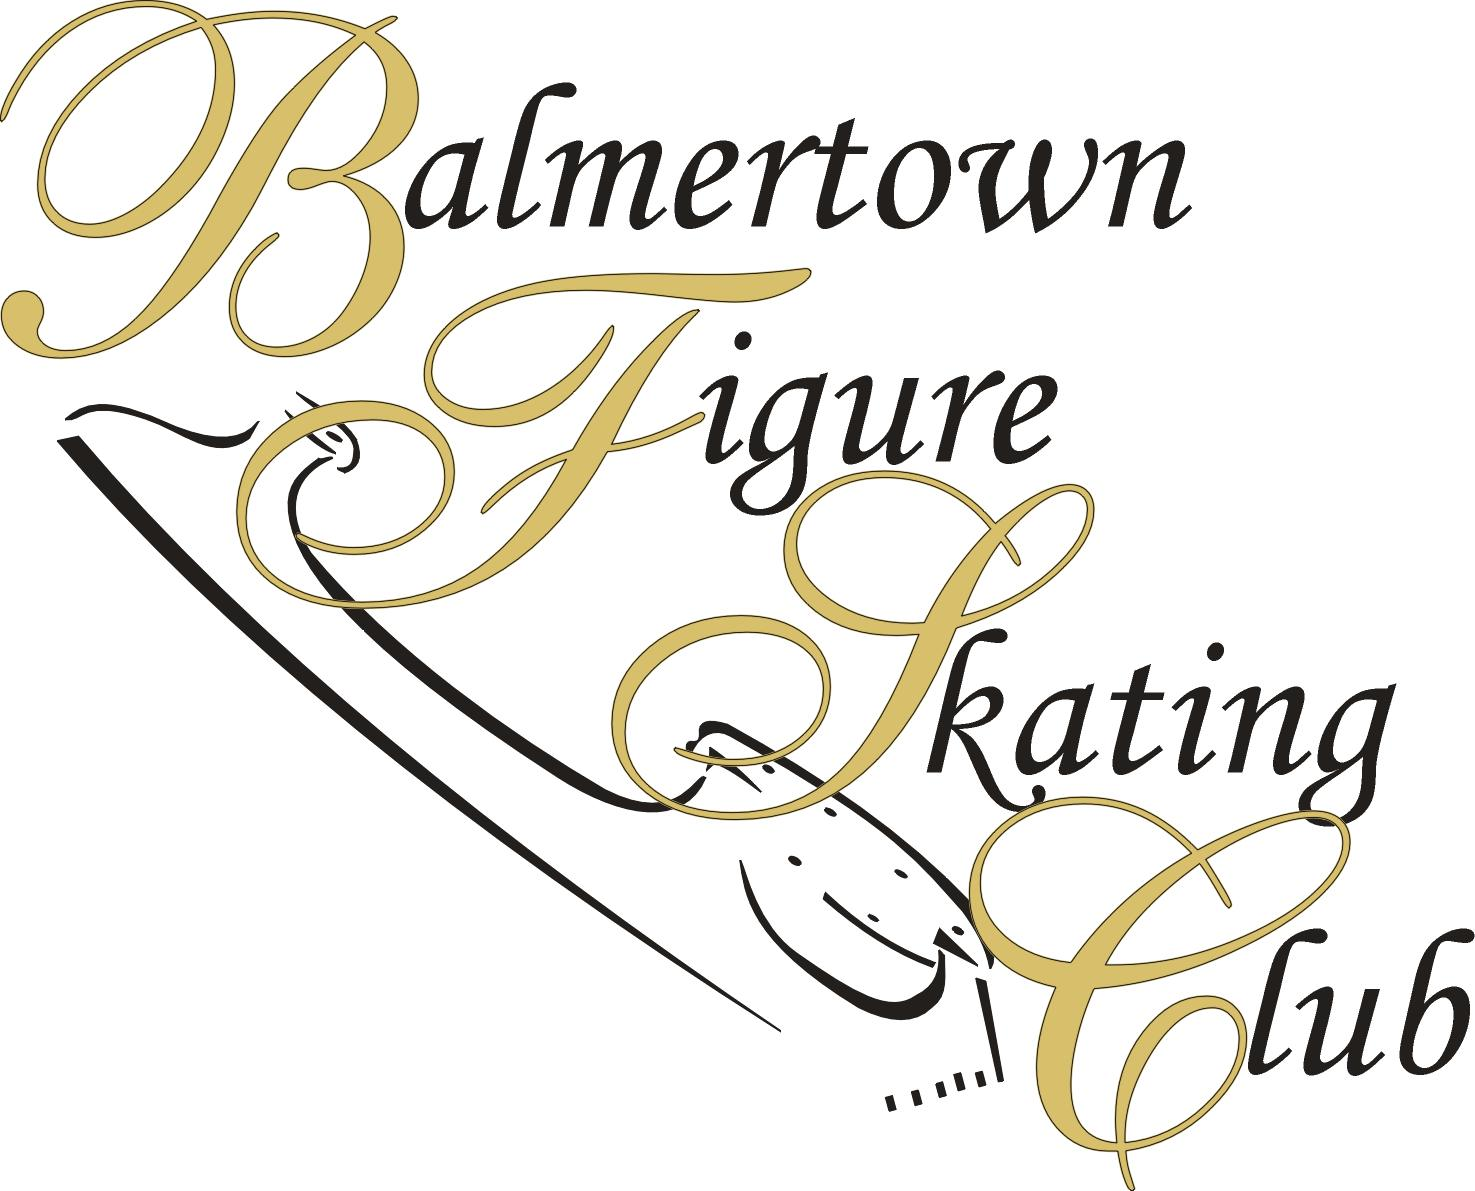 Balmerton Figure Skating Club